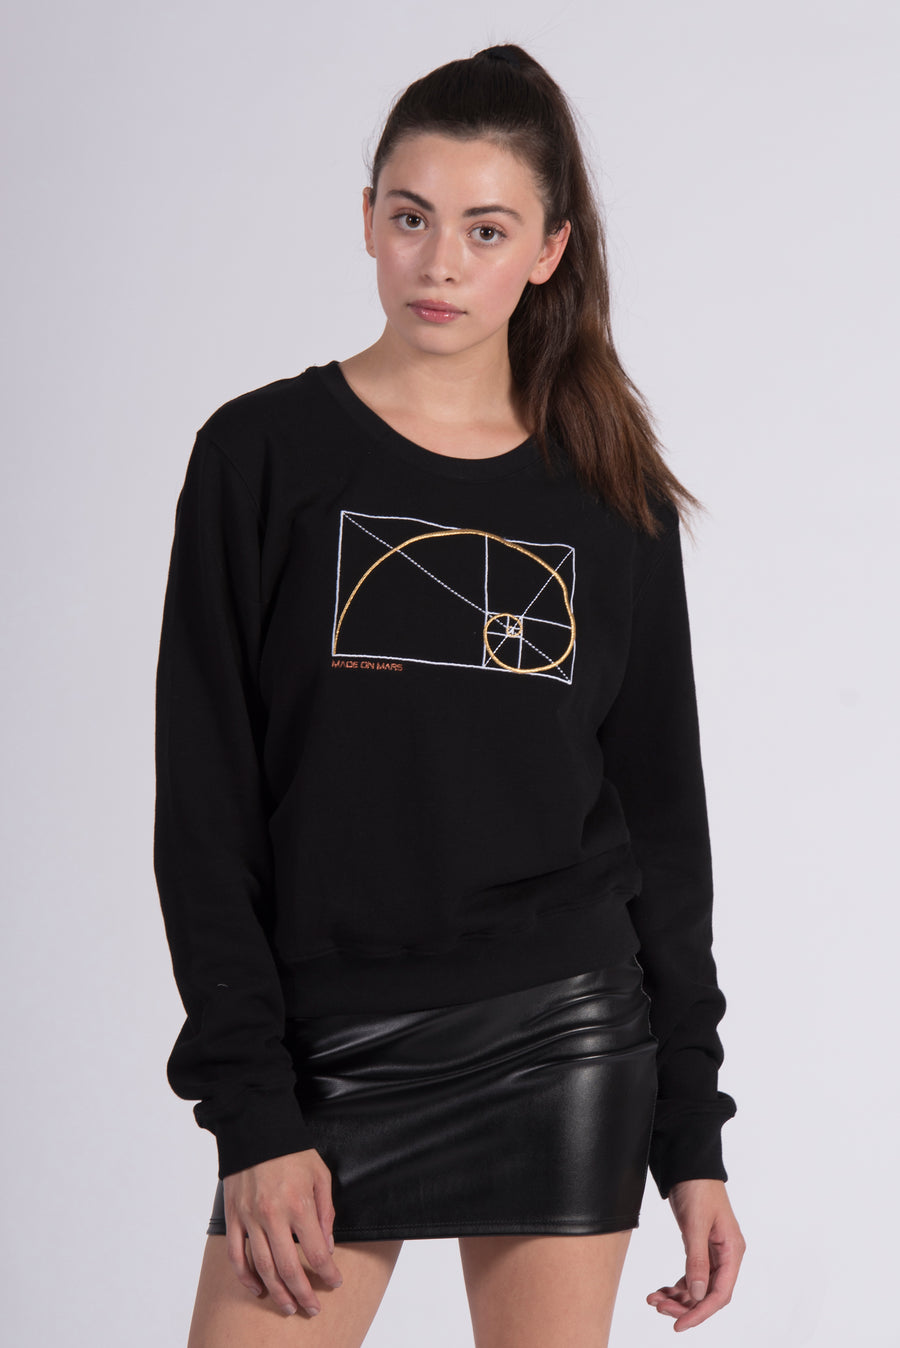 Golden Ratio Embroidery Black Cotton Women's Sweatshirt Art